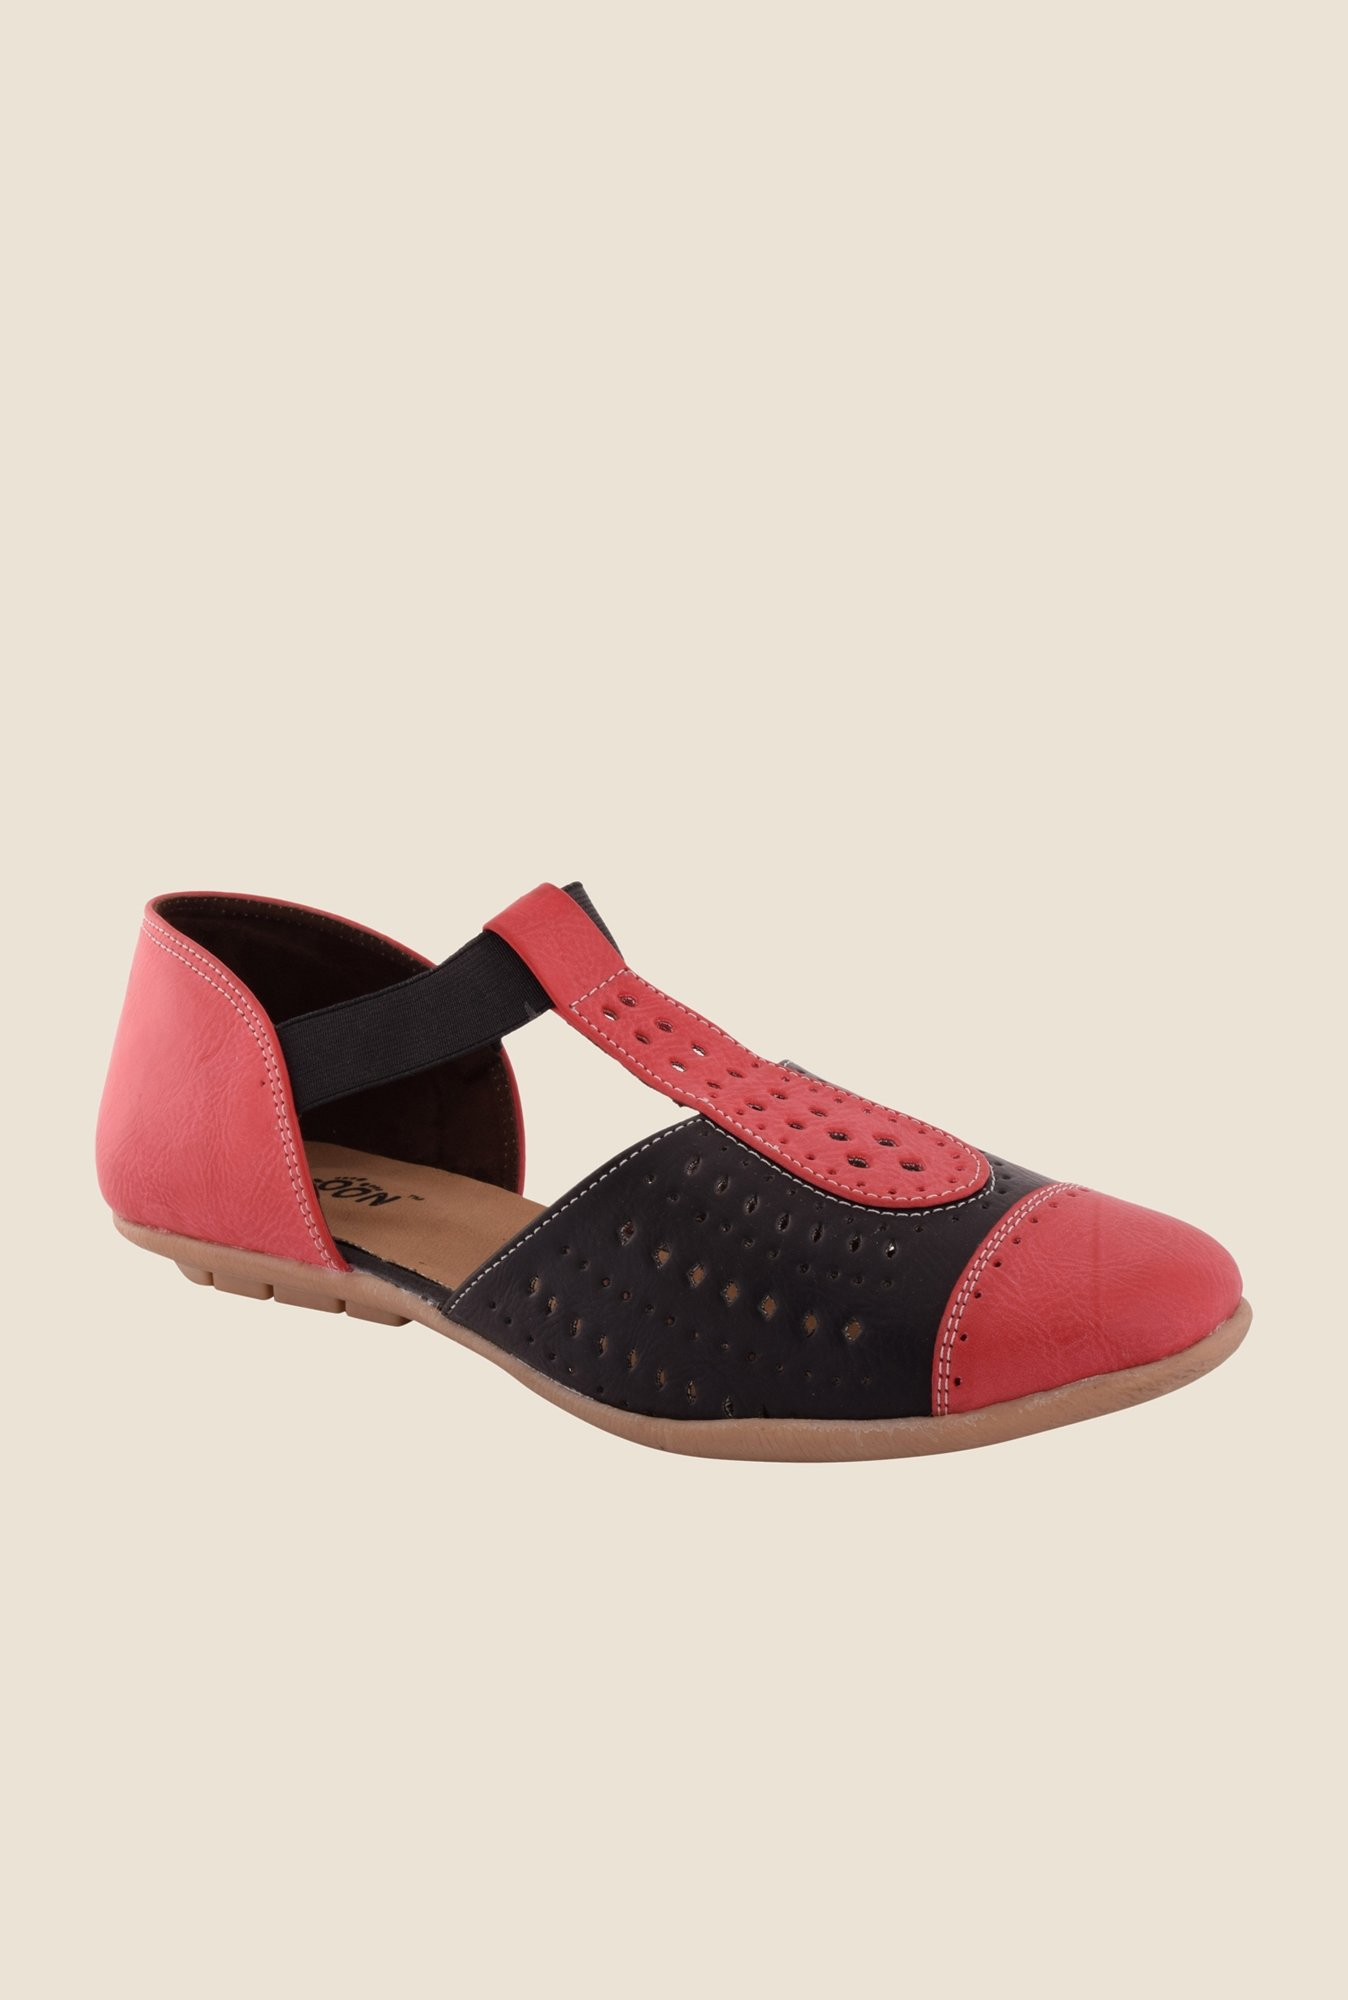 Cocoon Red & Black T-Strap D'orsay Sandals